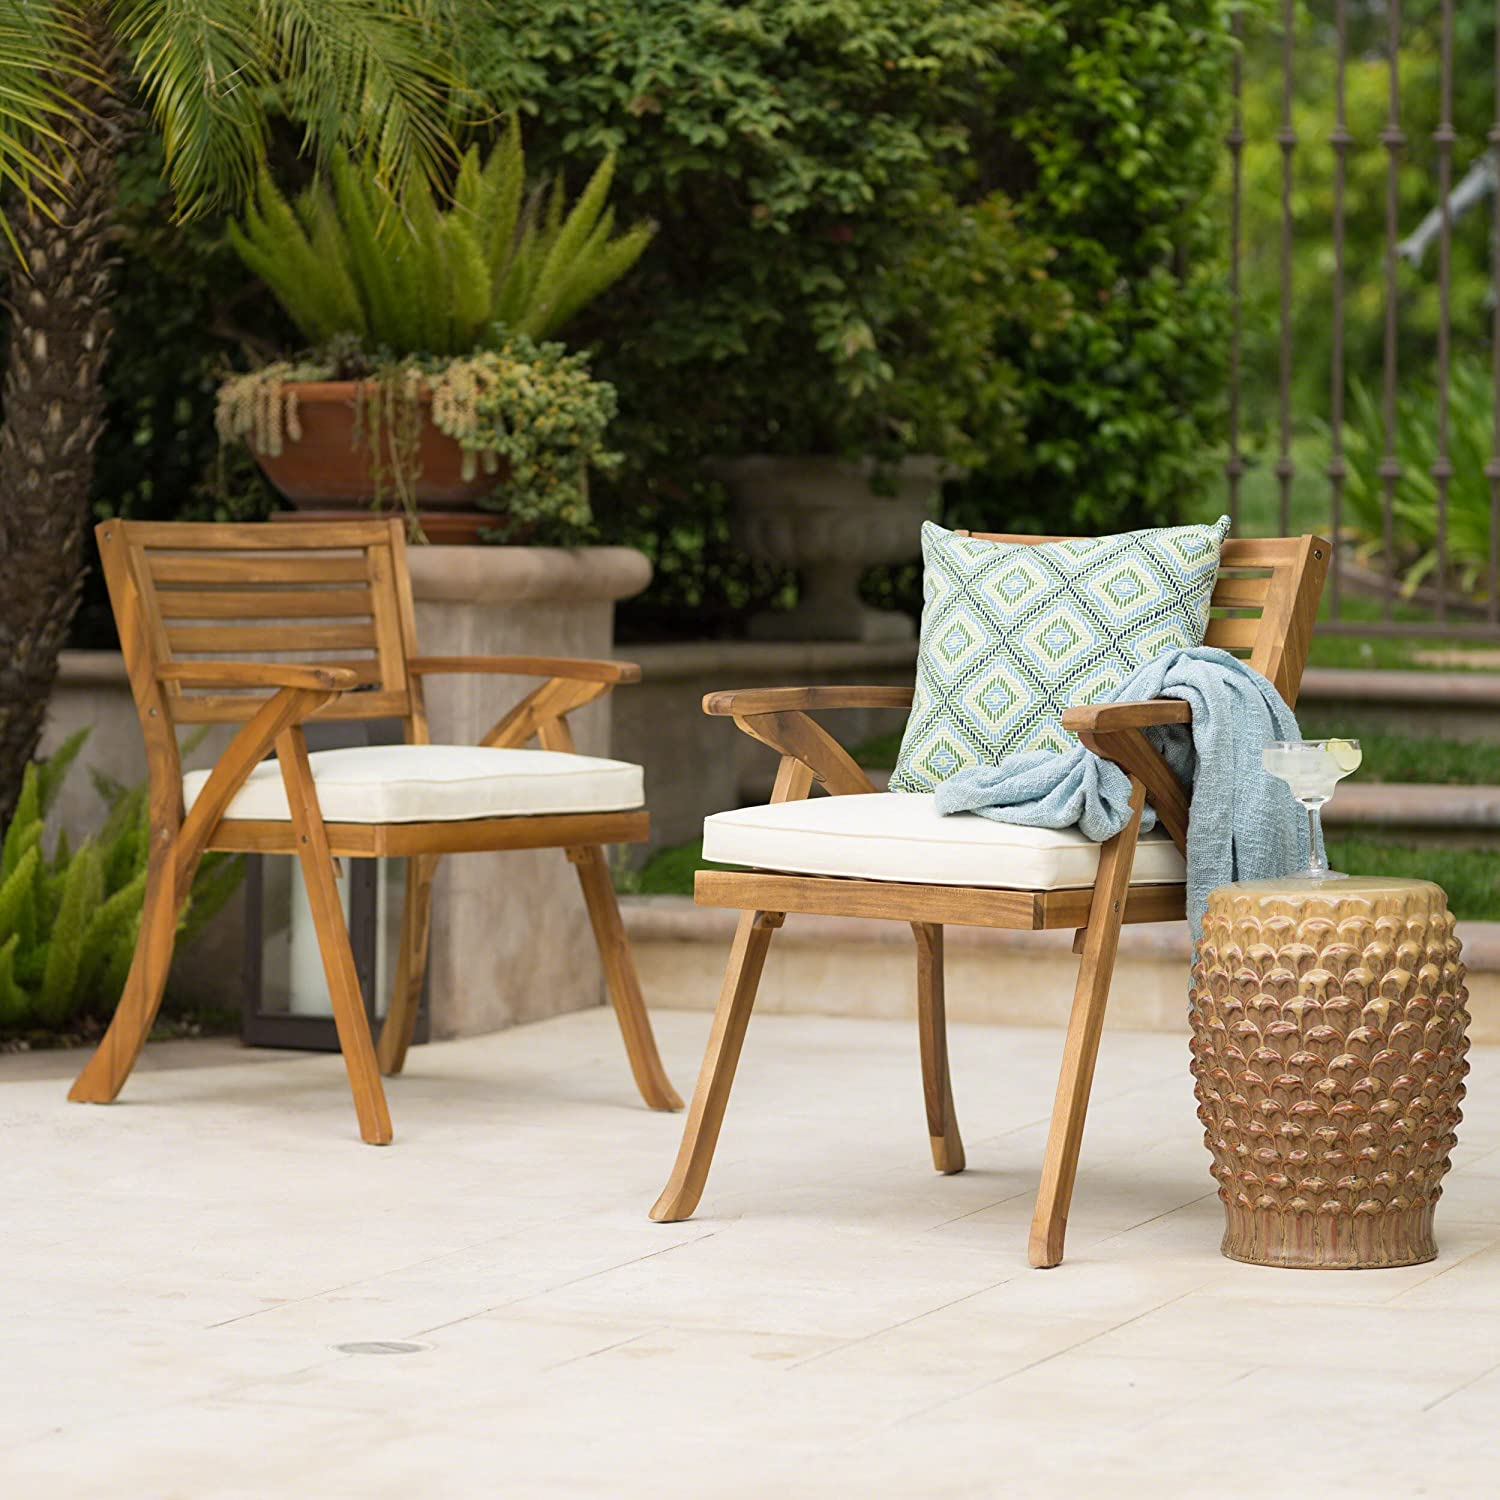 Amazon com christopher knight home helen outdoor teak finish acacia wood arm chair set of 2 garden outdoor